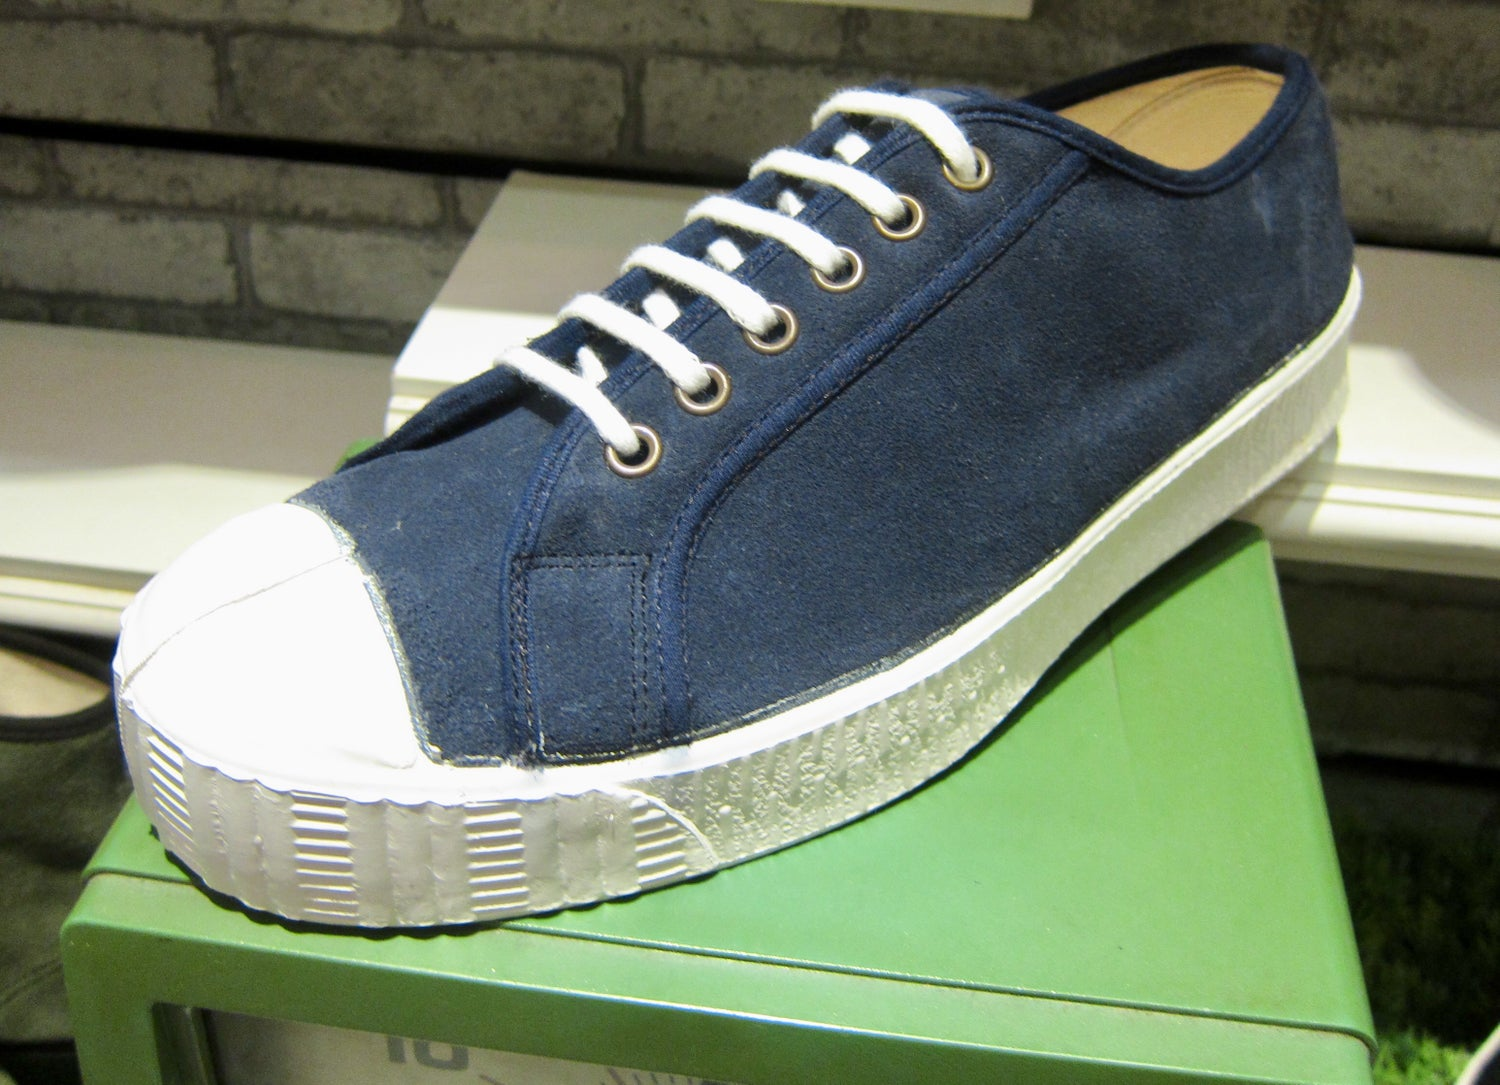 Image of FERN ARMY TRAINER LO SUEDE NAVY SNEAKER. MADE IN THE CZECH REPUBLIC